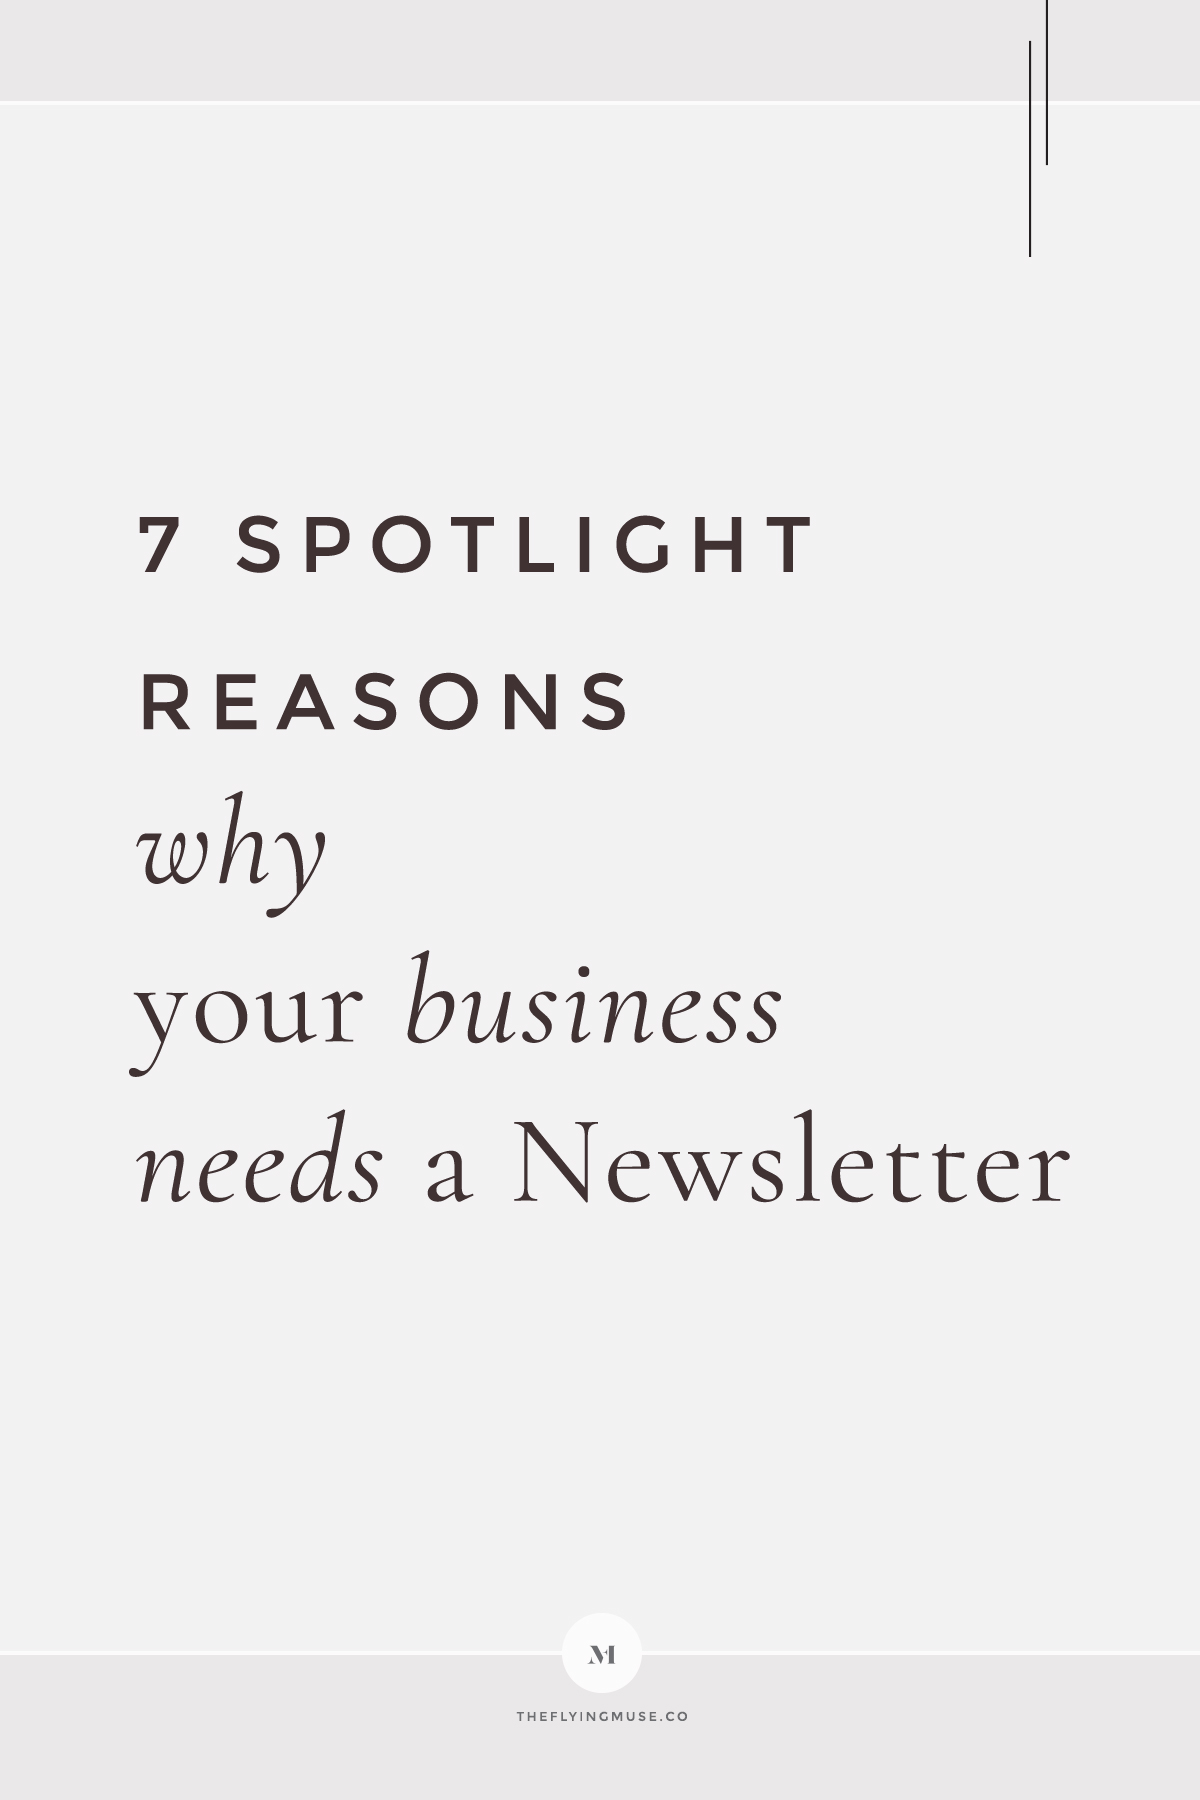 7-spotlight-reasons-why-your-business-needs--newsletter